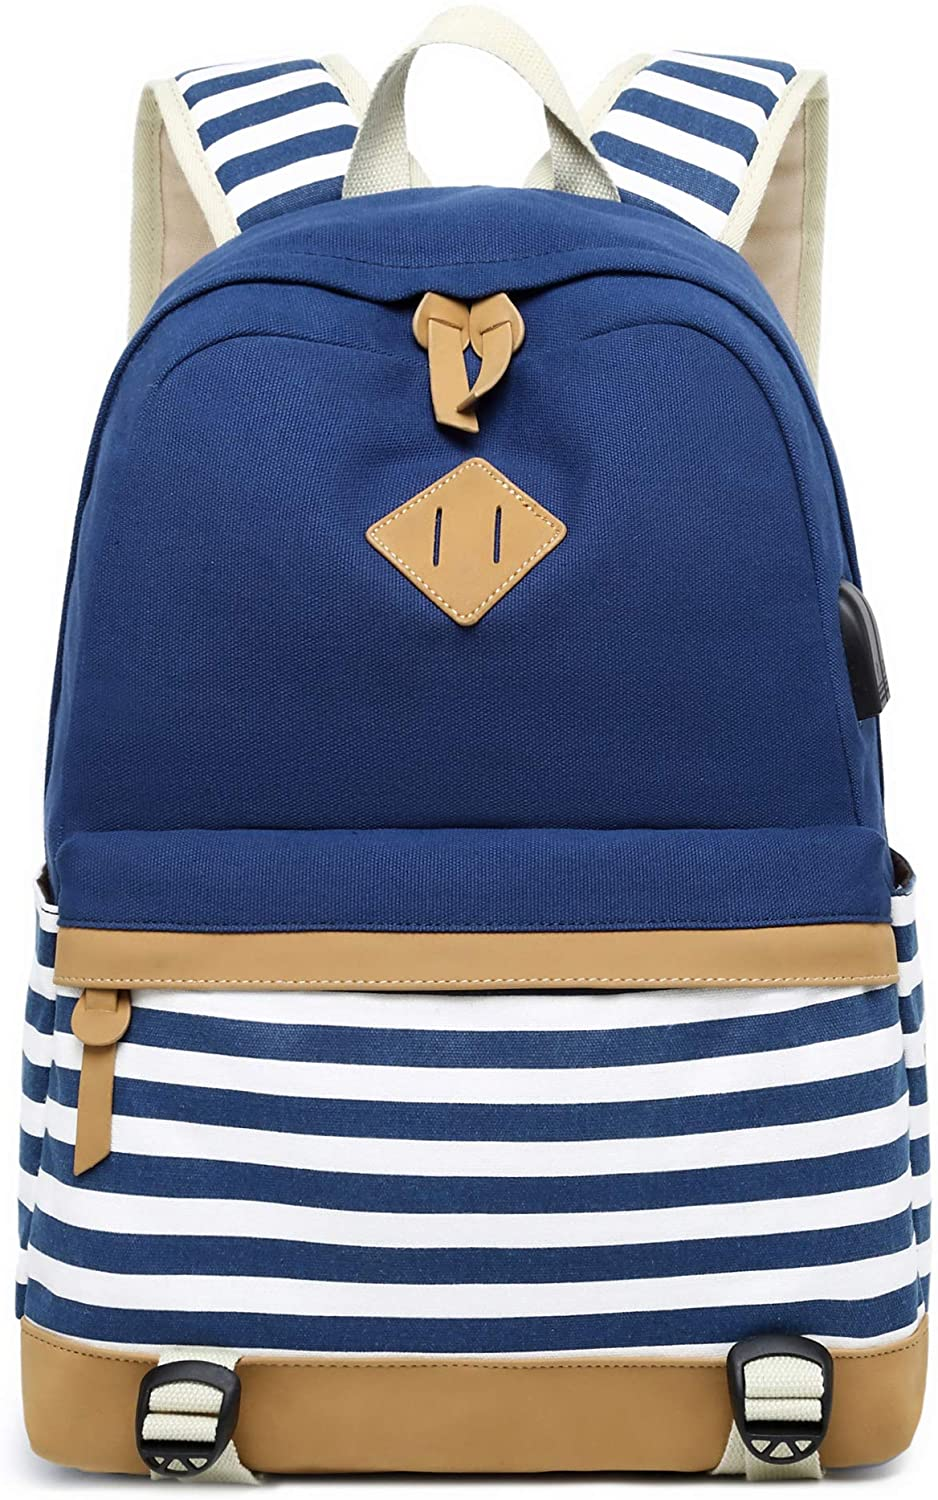 On Iswee Waterproof Canvas Backpack for Women Fits 14